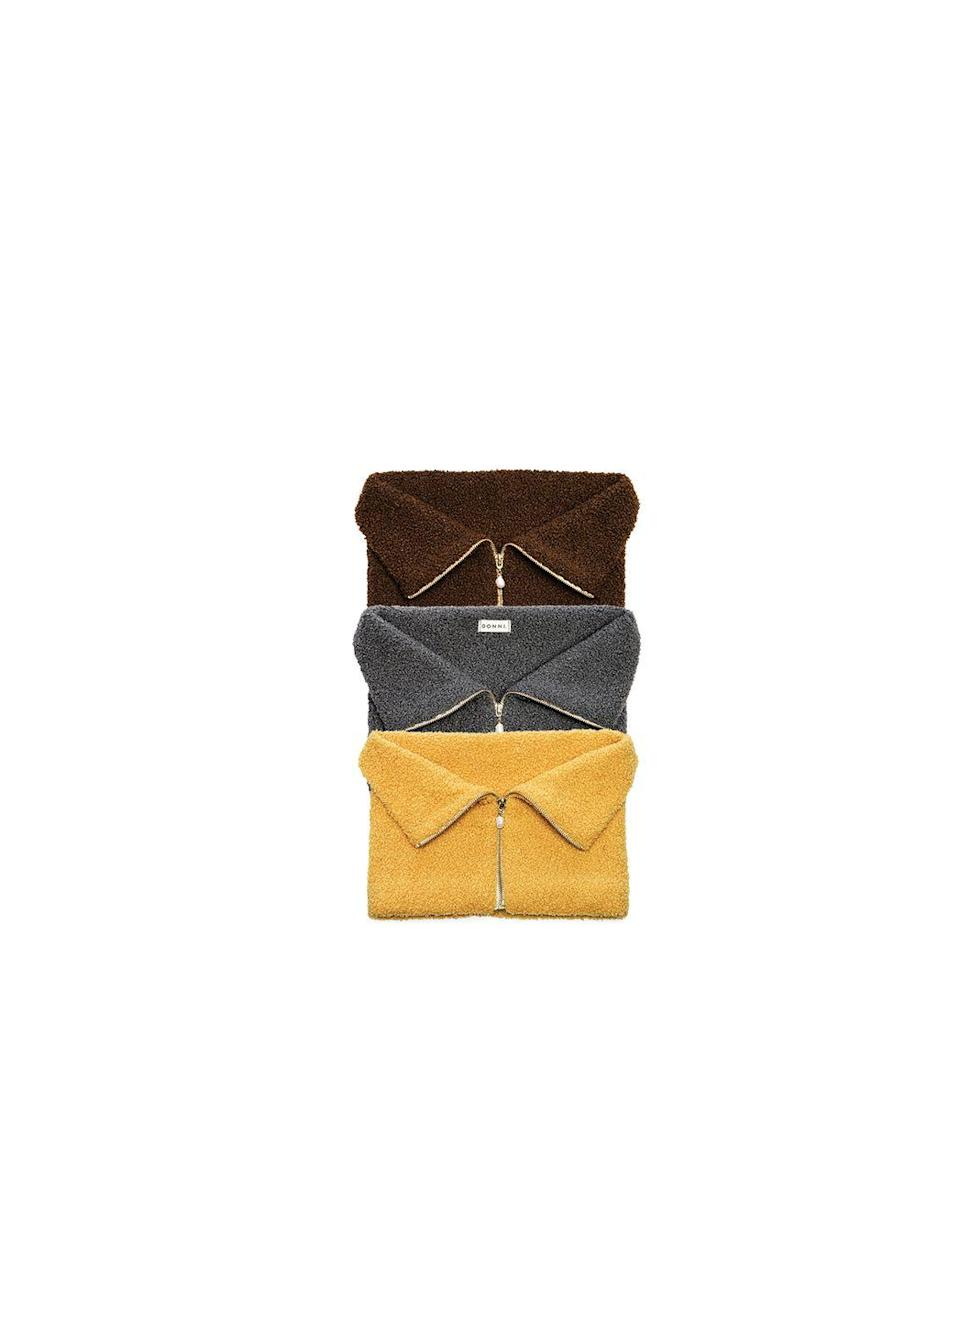 """<p>What do you get when a dickey meets a scarf? These cool neck cuffs that can be worn with outerwear or to warm up a sweatshirt or sweater. </p><p><em>Donni</em>, $108 each</p><p><a class=""""link rapid-noclick-resp"""" href=""""https://shopdonni.com/products/copy-of-mini-sherpa-zip-cuff-camel"""" rel=""""nofollow noopener"""" target=""""_blank"""" data-ylk=""""slk:SHOP NOW"""">SHOP NOW</a></p>"""